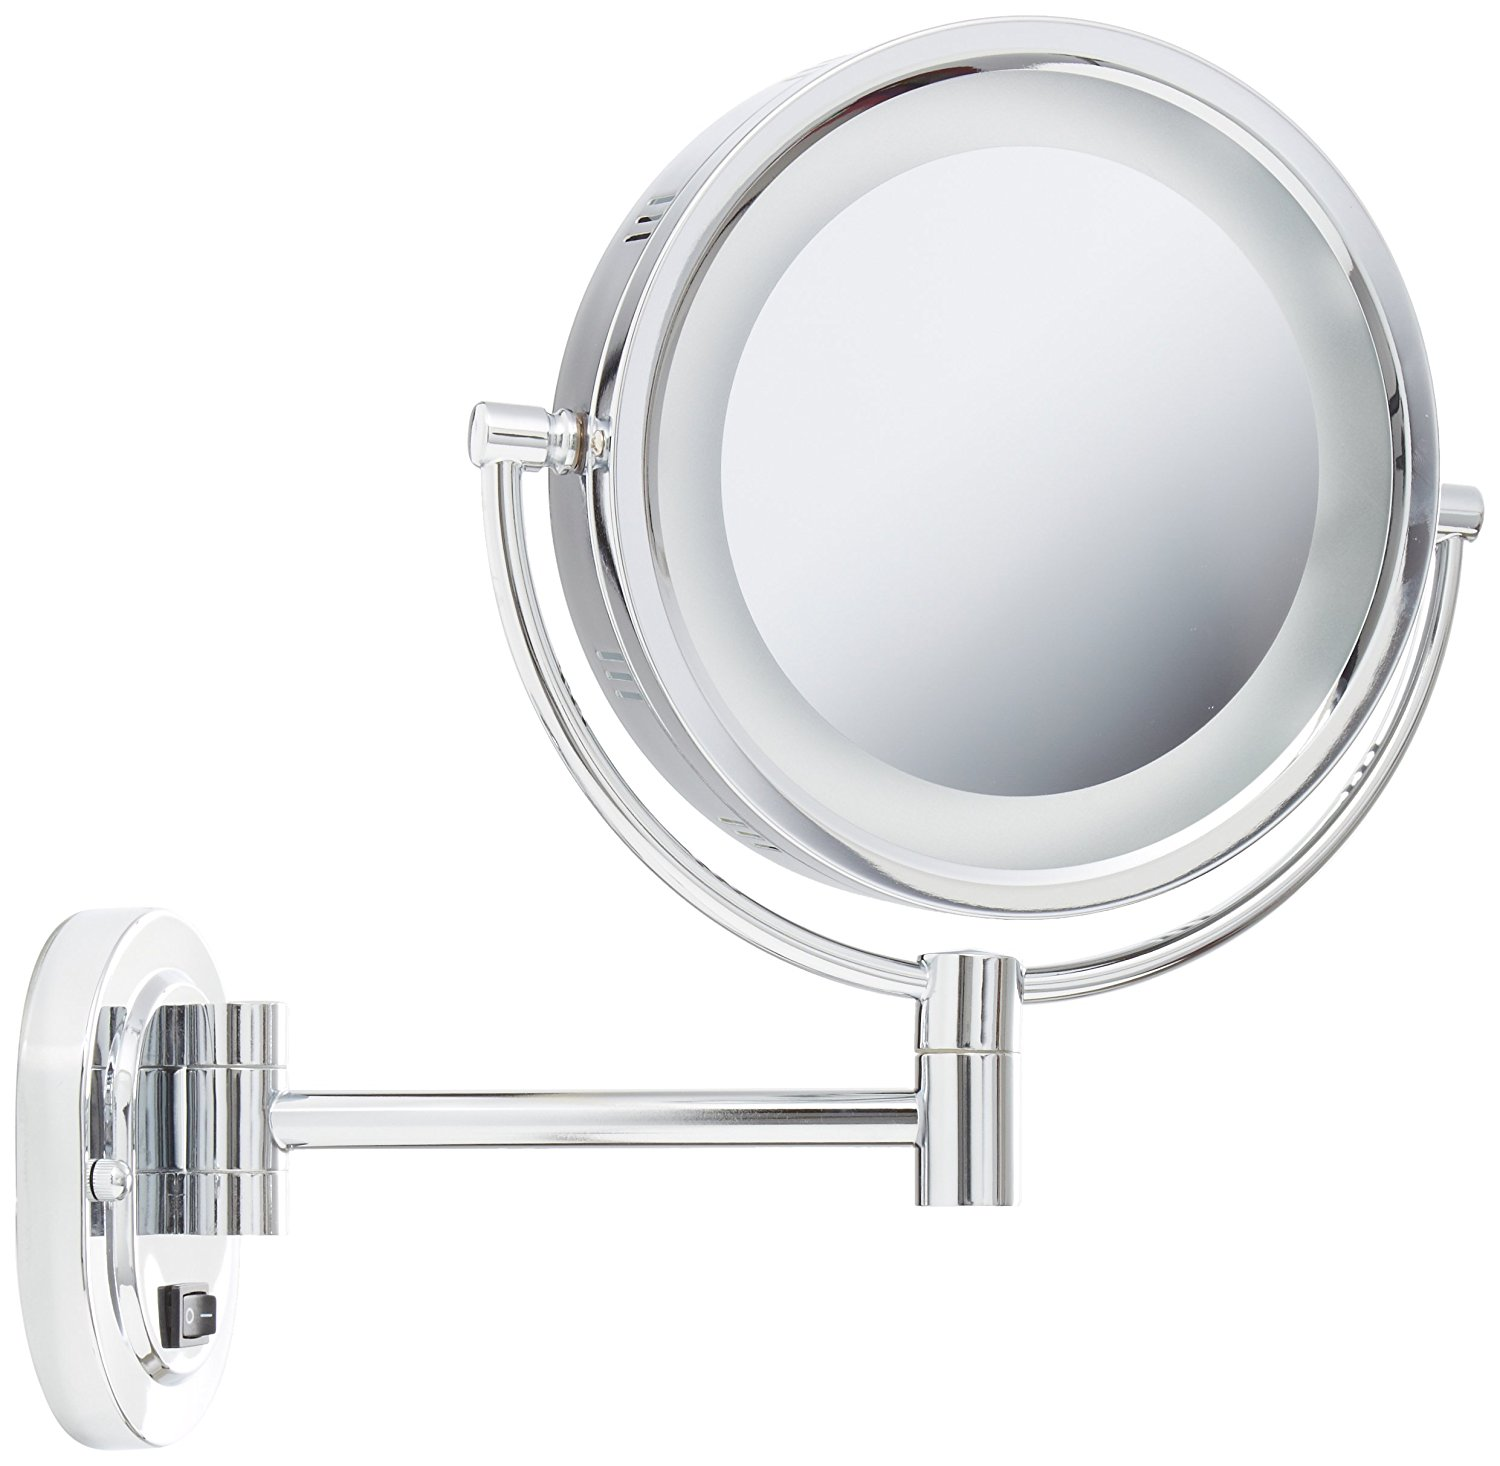 Best Lighted Vanity Mirror-Jerdon HL165CD Wall Mount Makeup Mirror